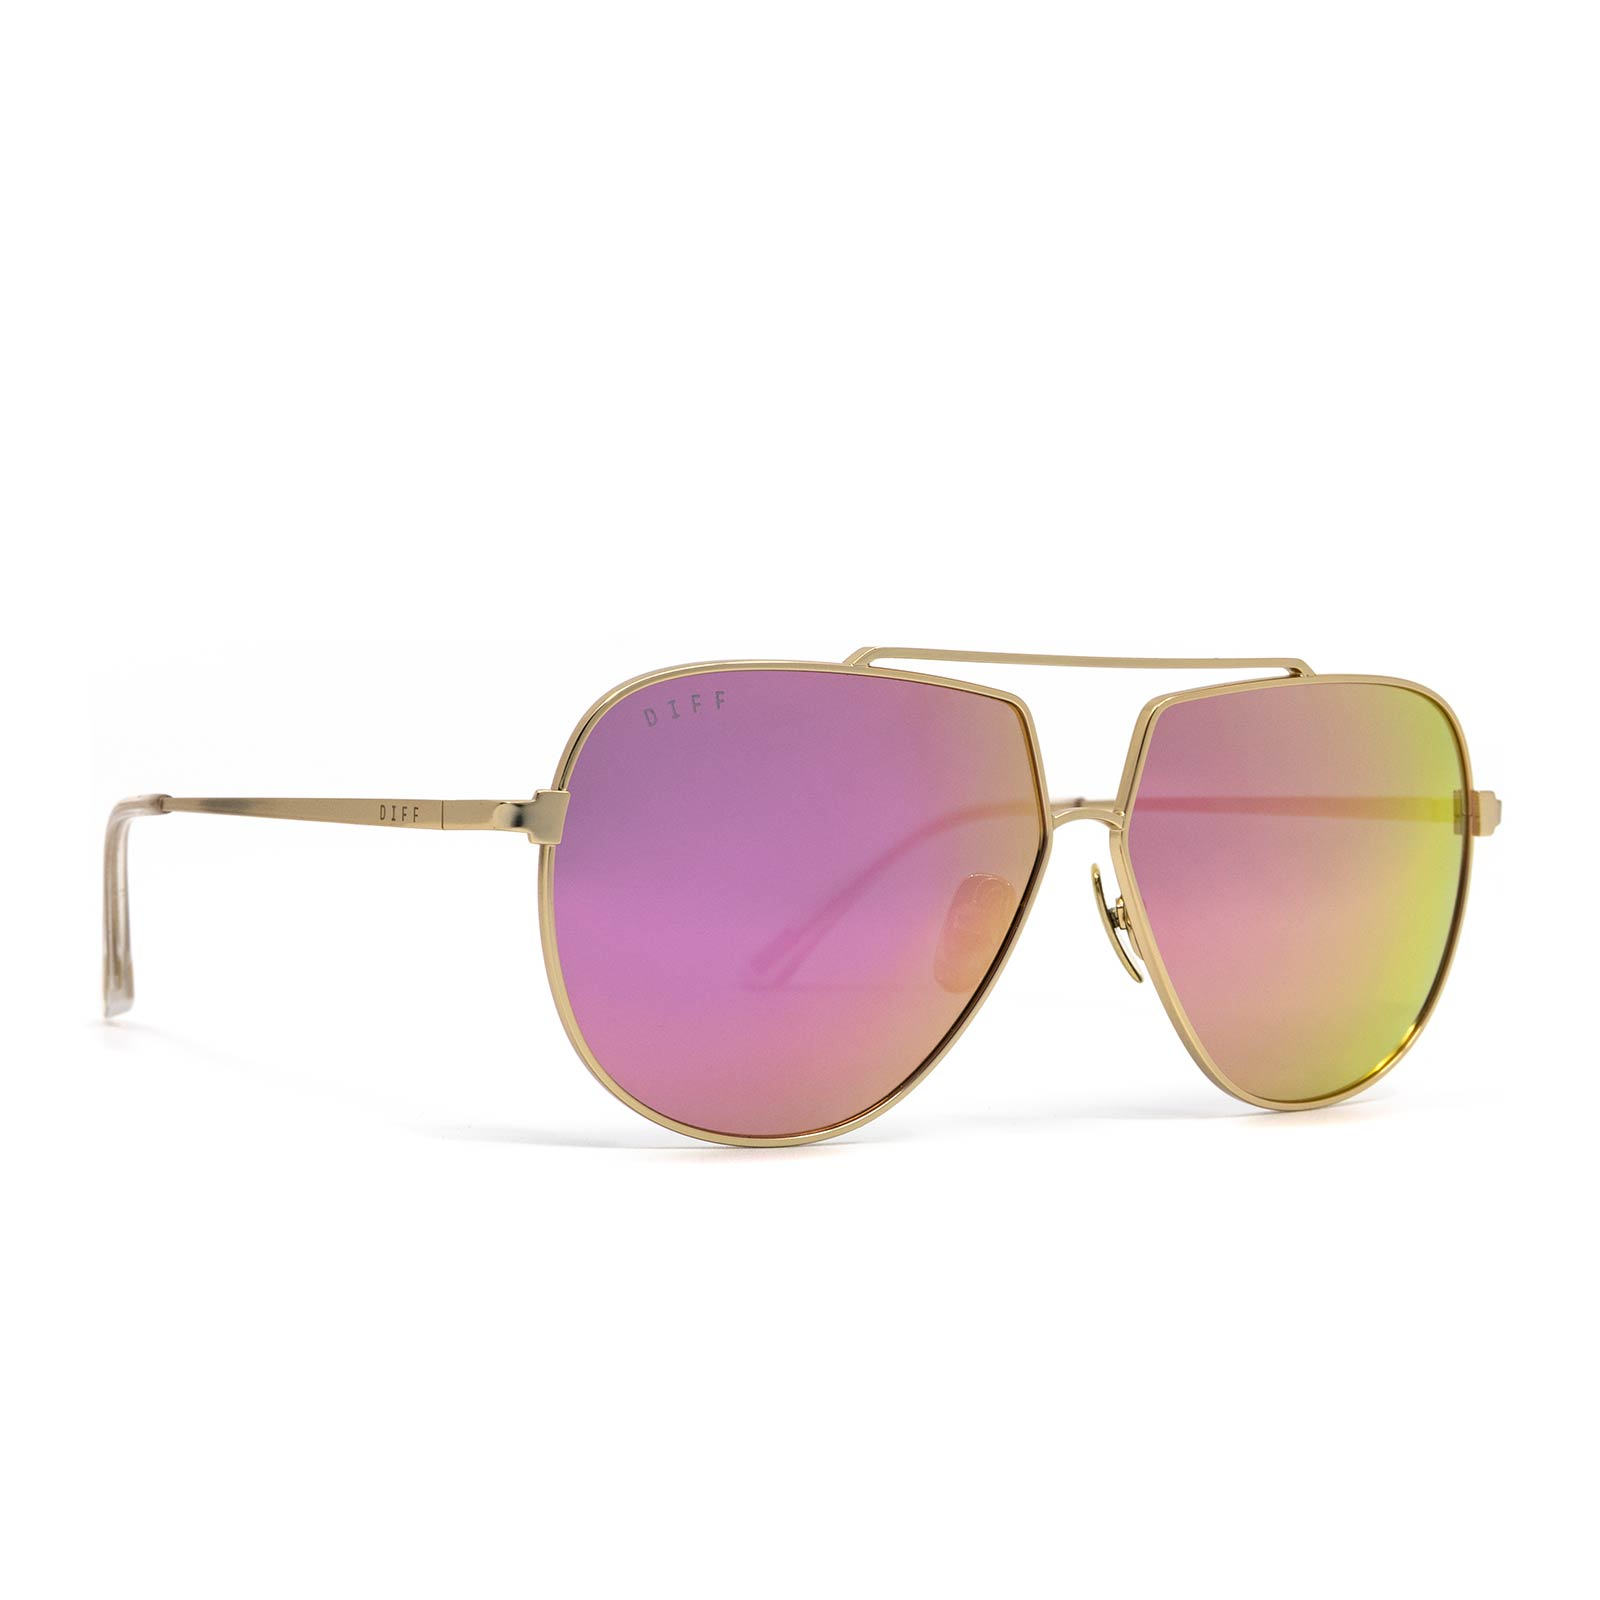 Denver sunglasses with champagne frame and pink mirror lens- angle view